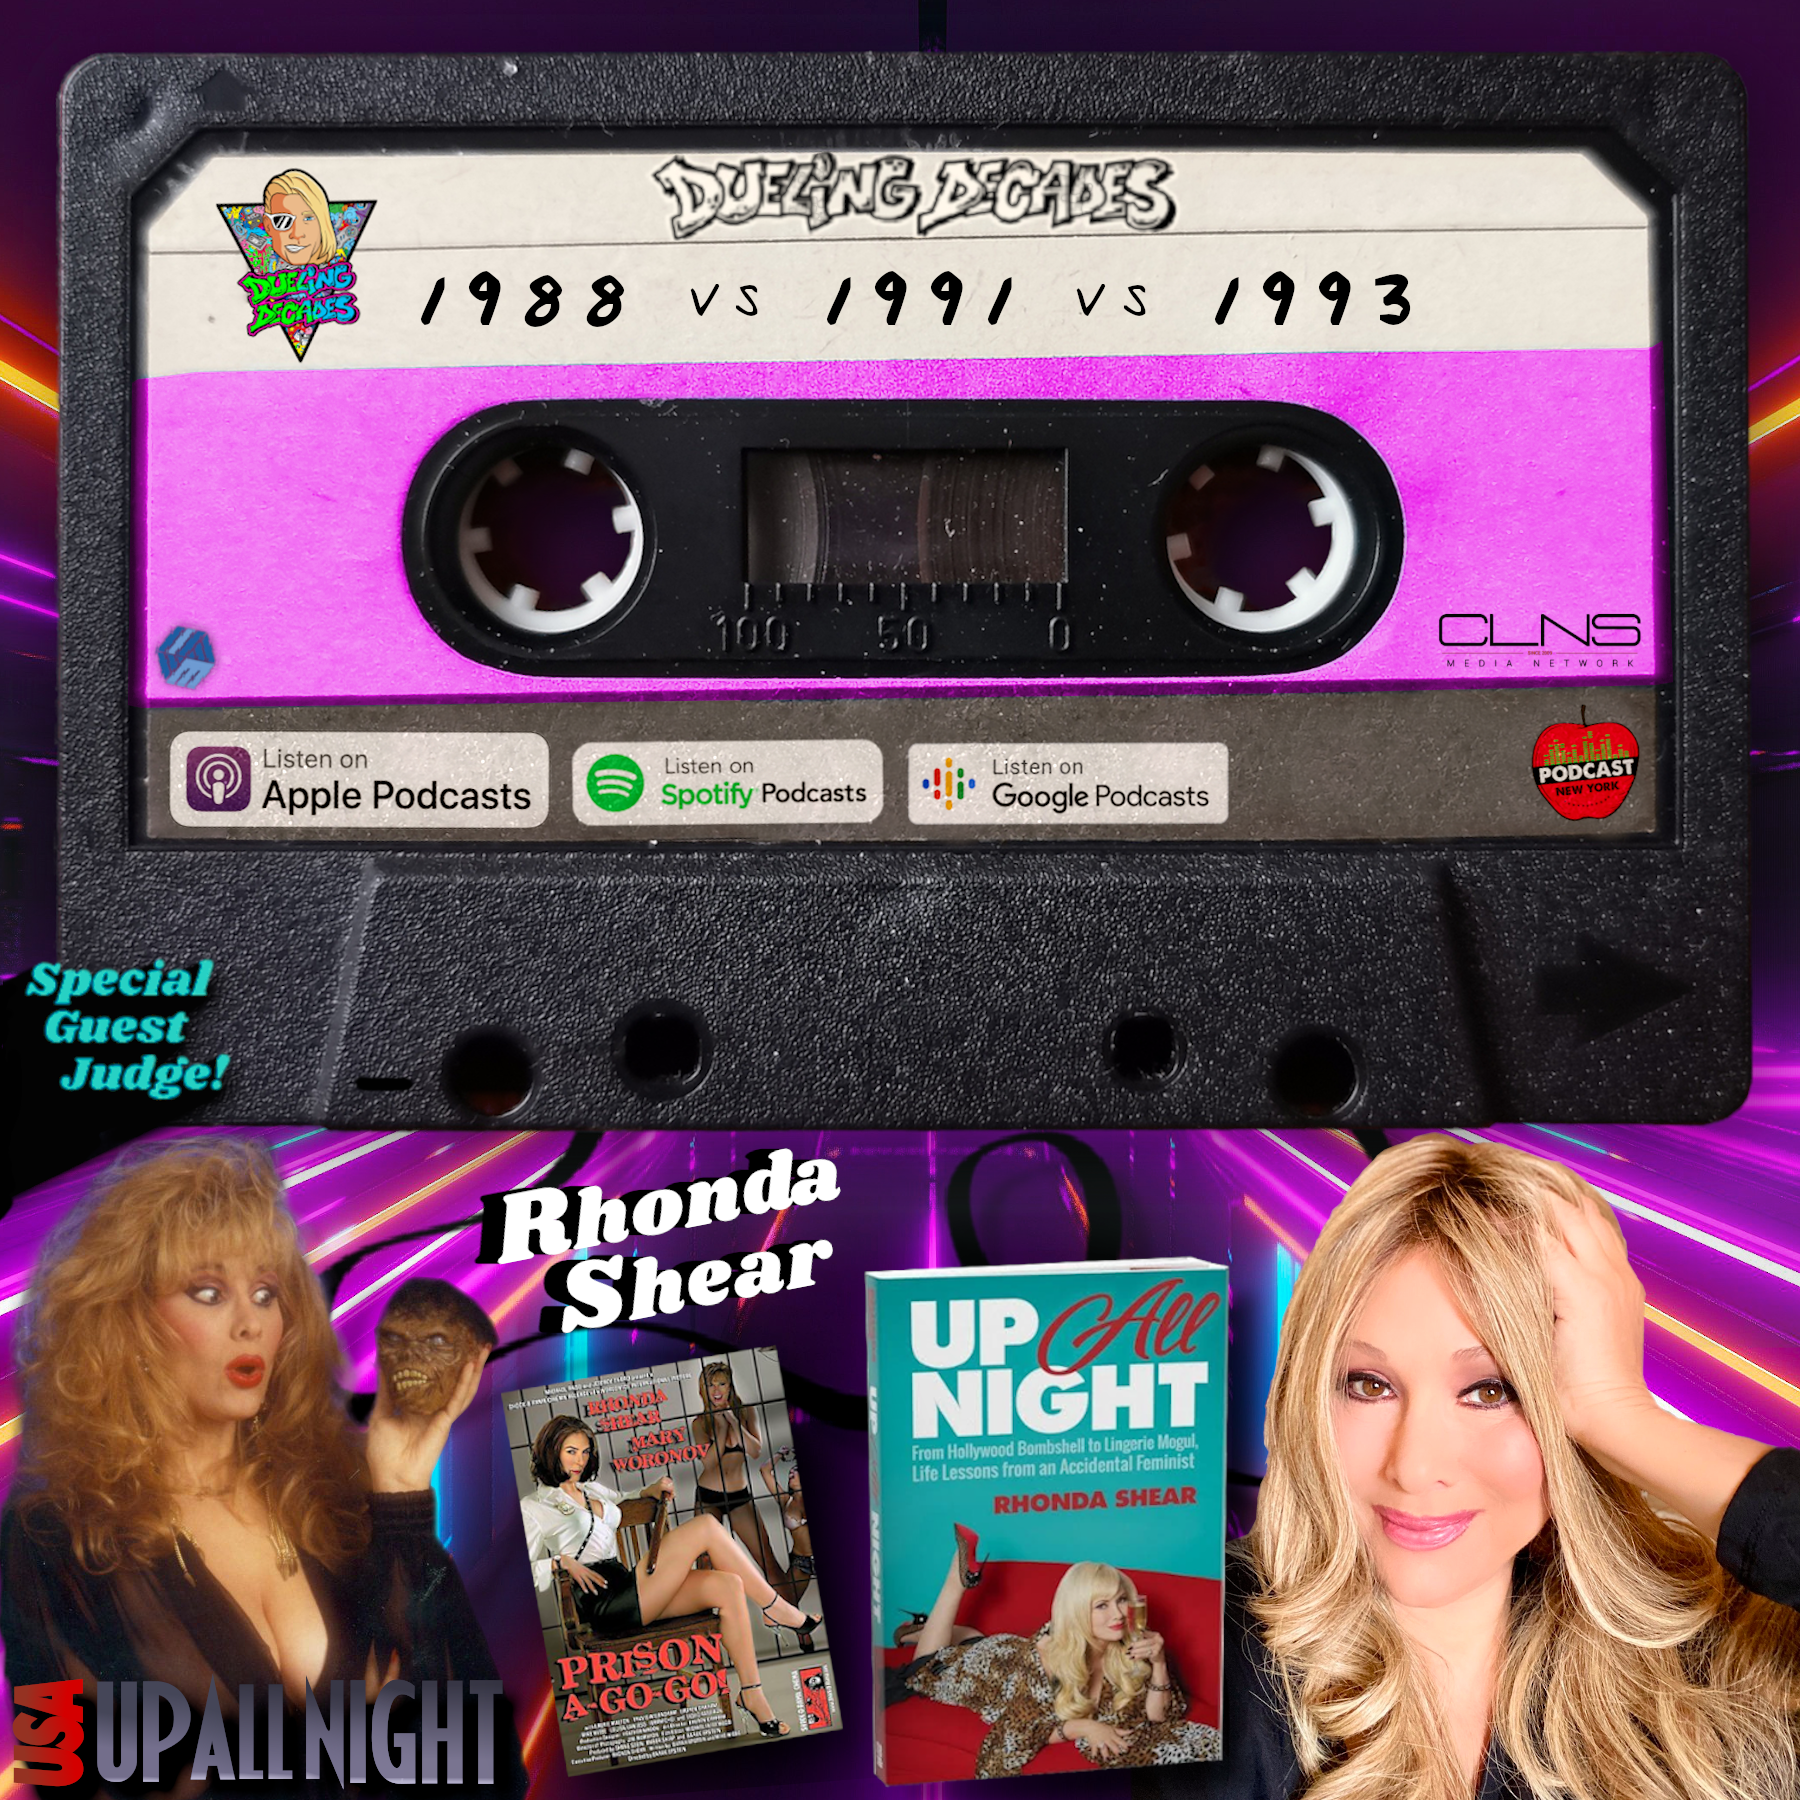 "The Dueling Decades' crew stays ""Up All Night"" w/special guest judge Rhonda Shear in this B-movie battle between 88, 91 & 93!"